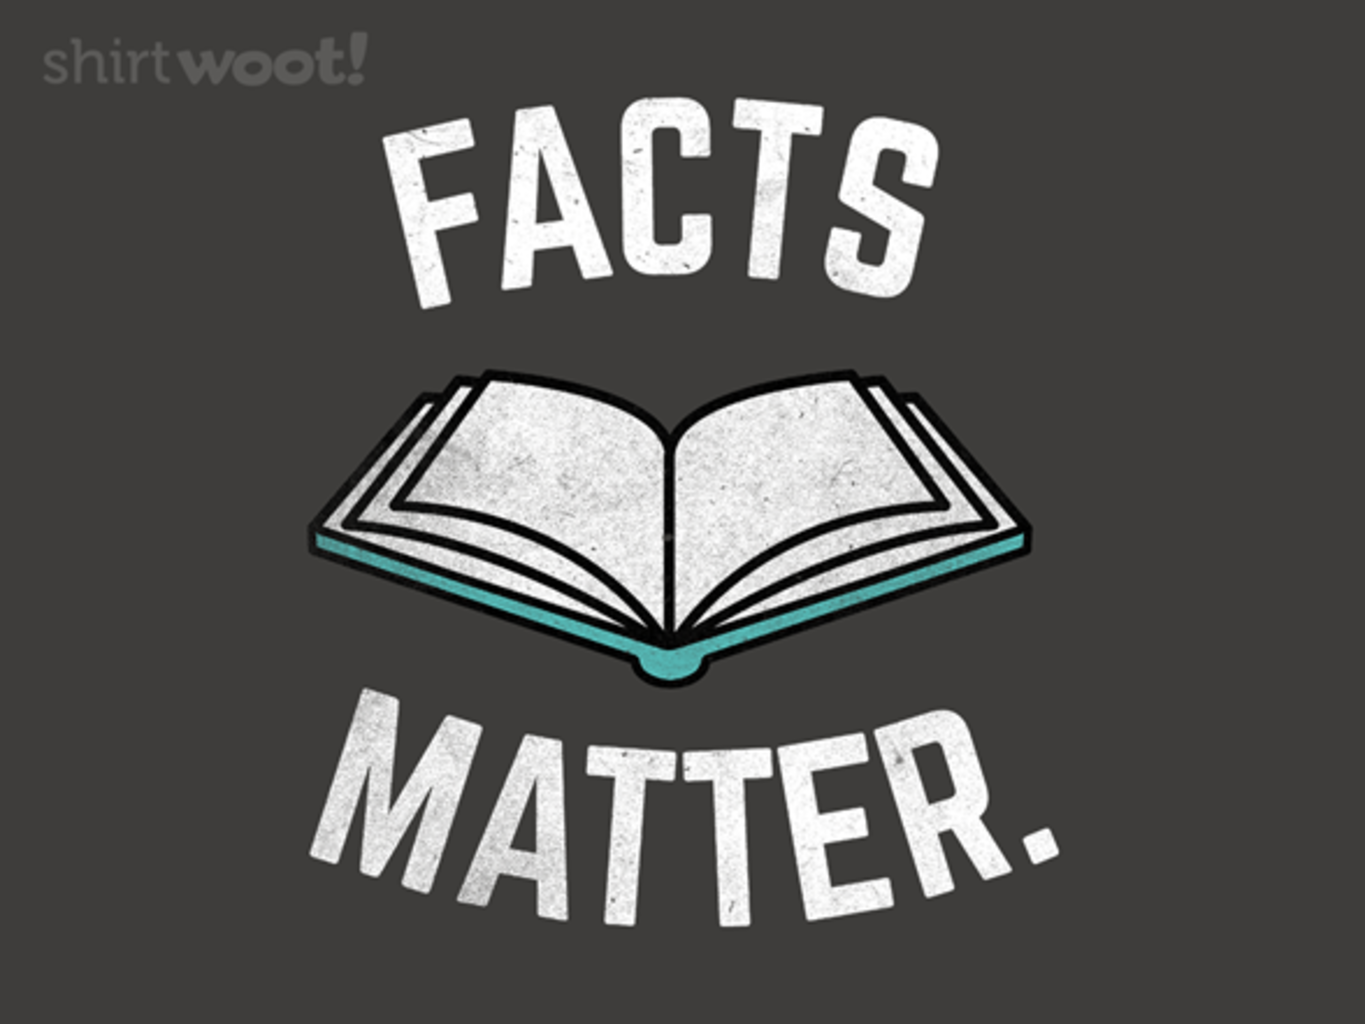 Woot!: Facts Matter